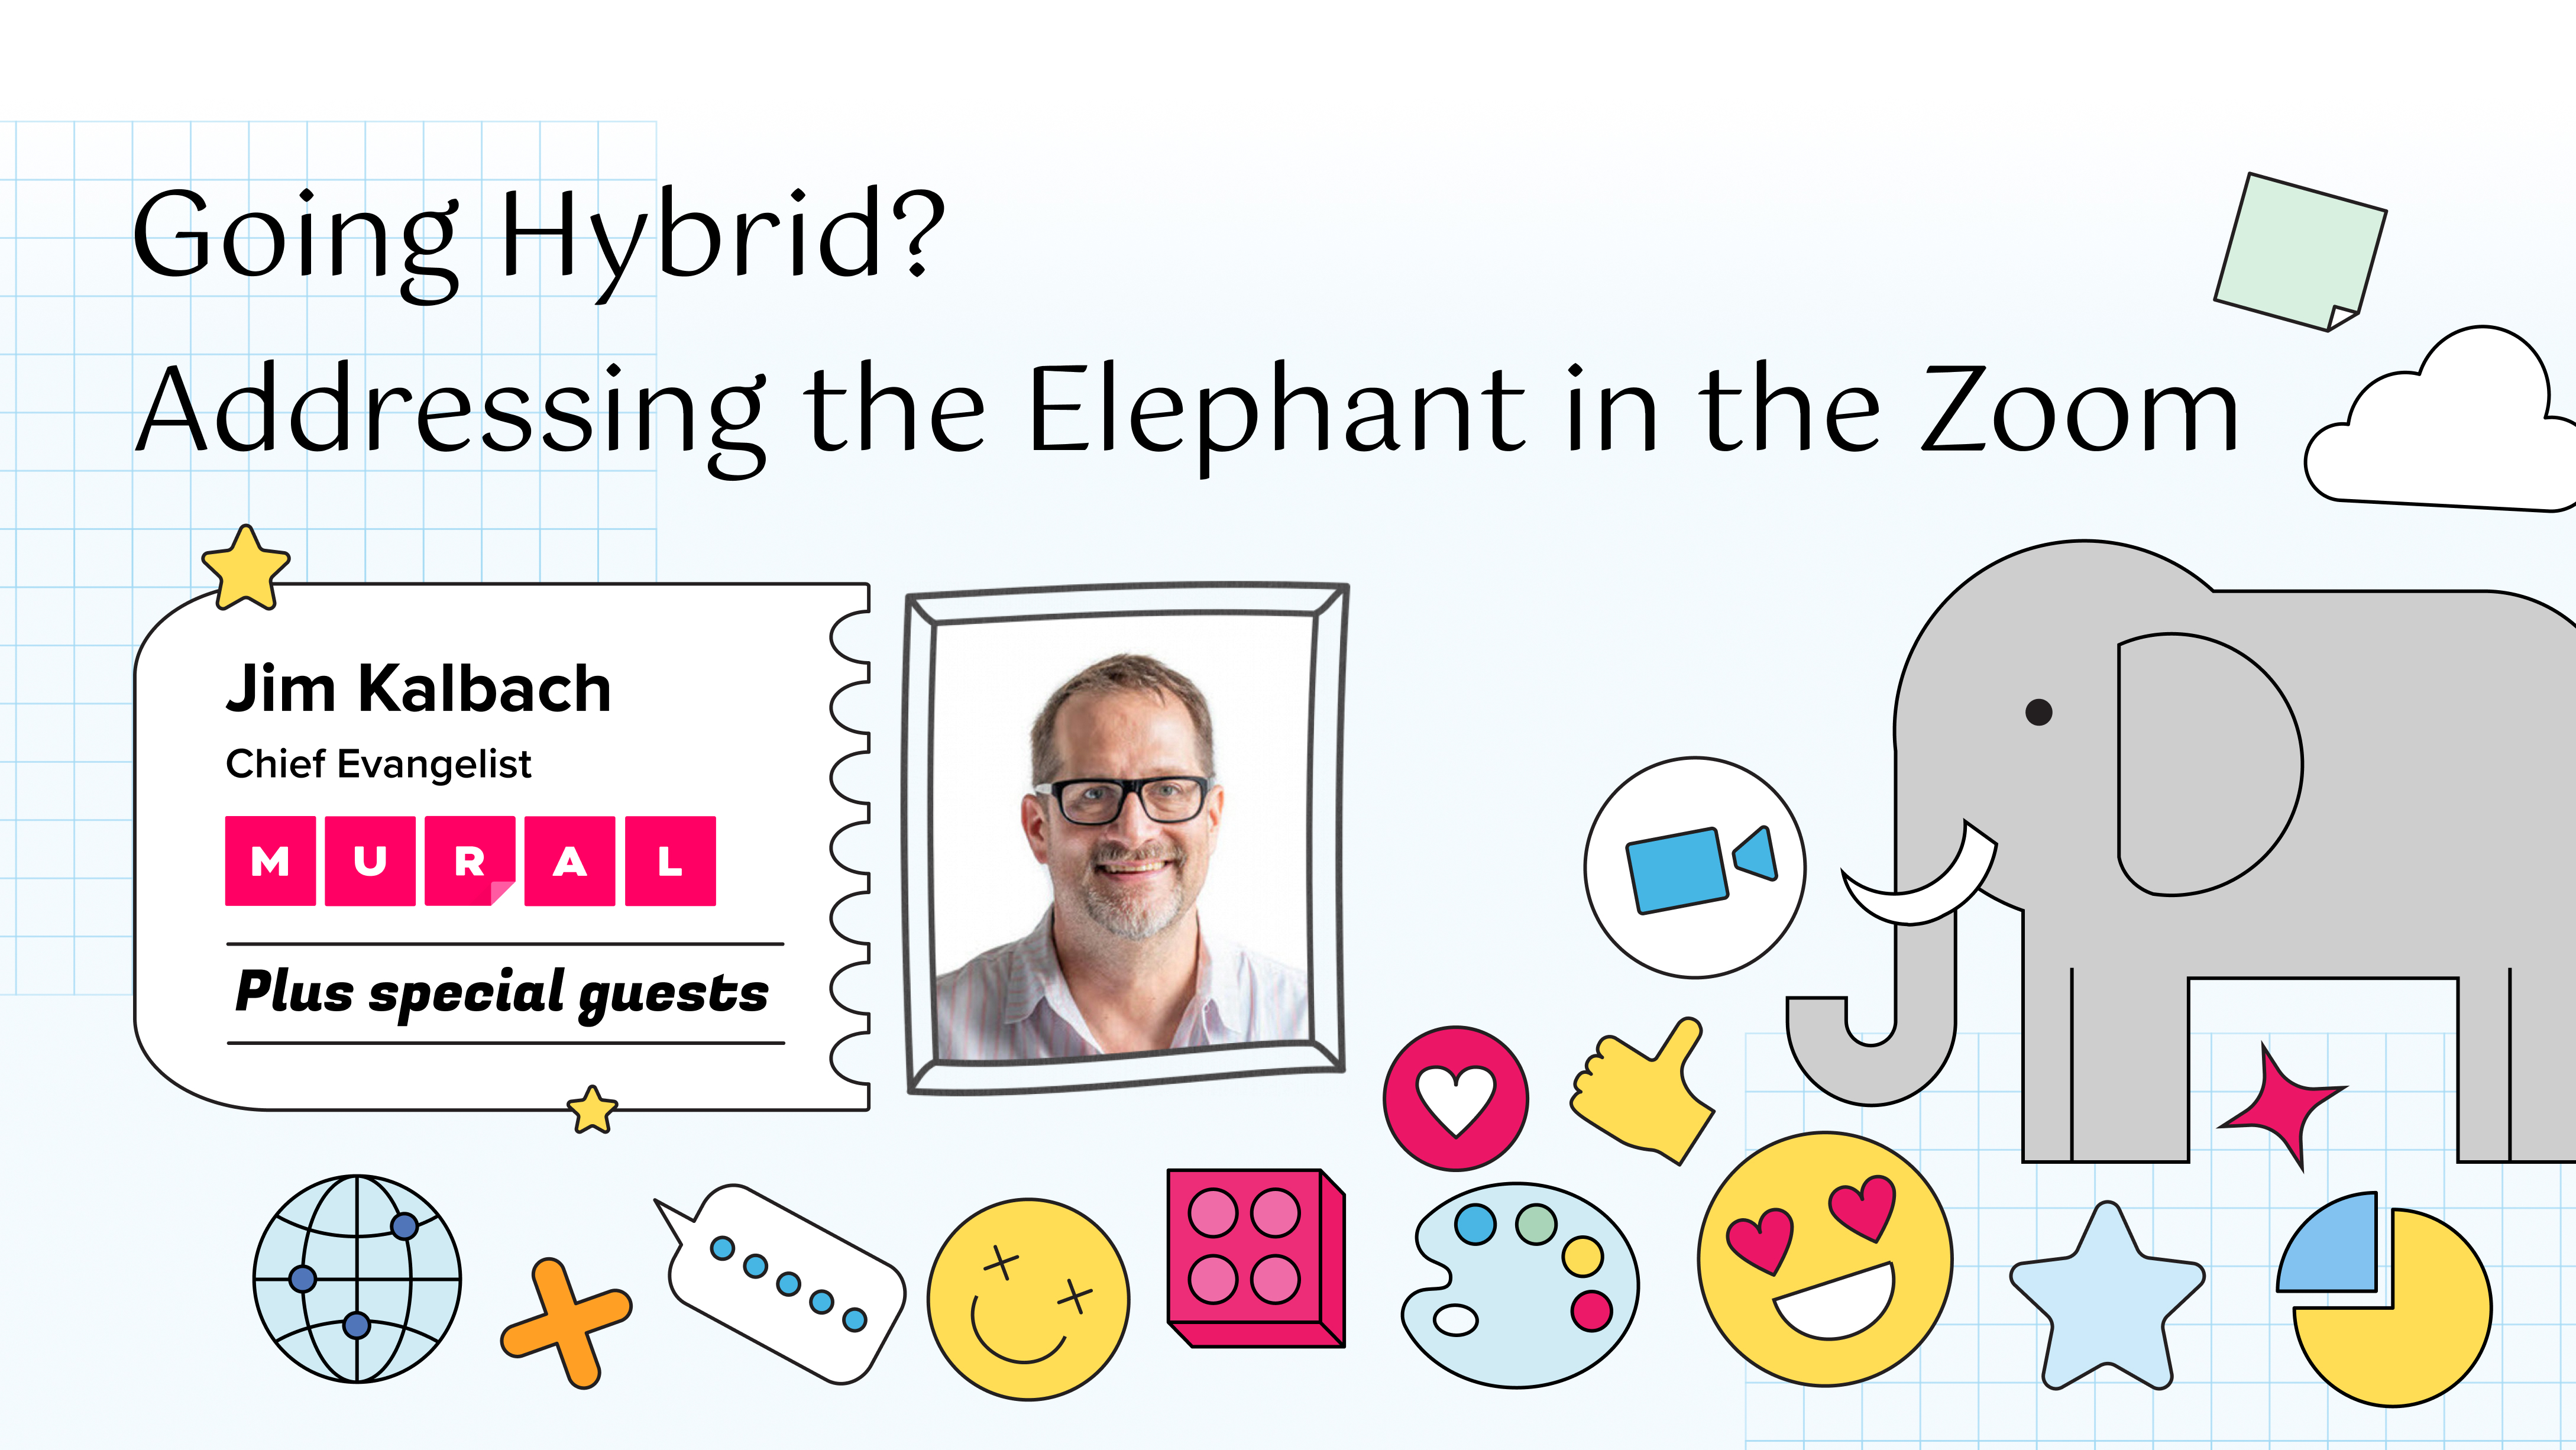 Going Hybrid? Addressing the Elephant in the Zoom